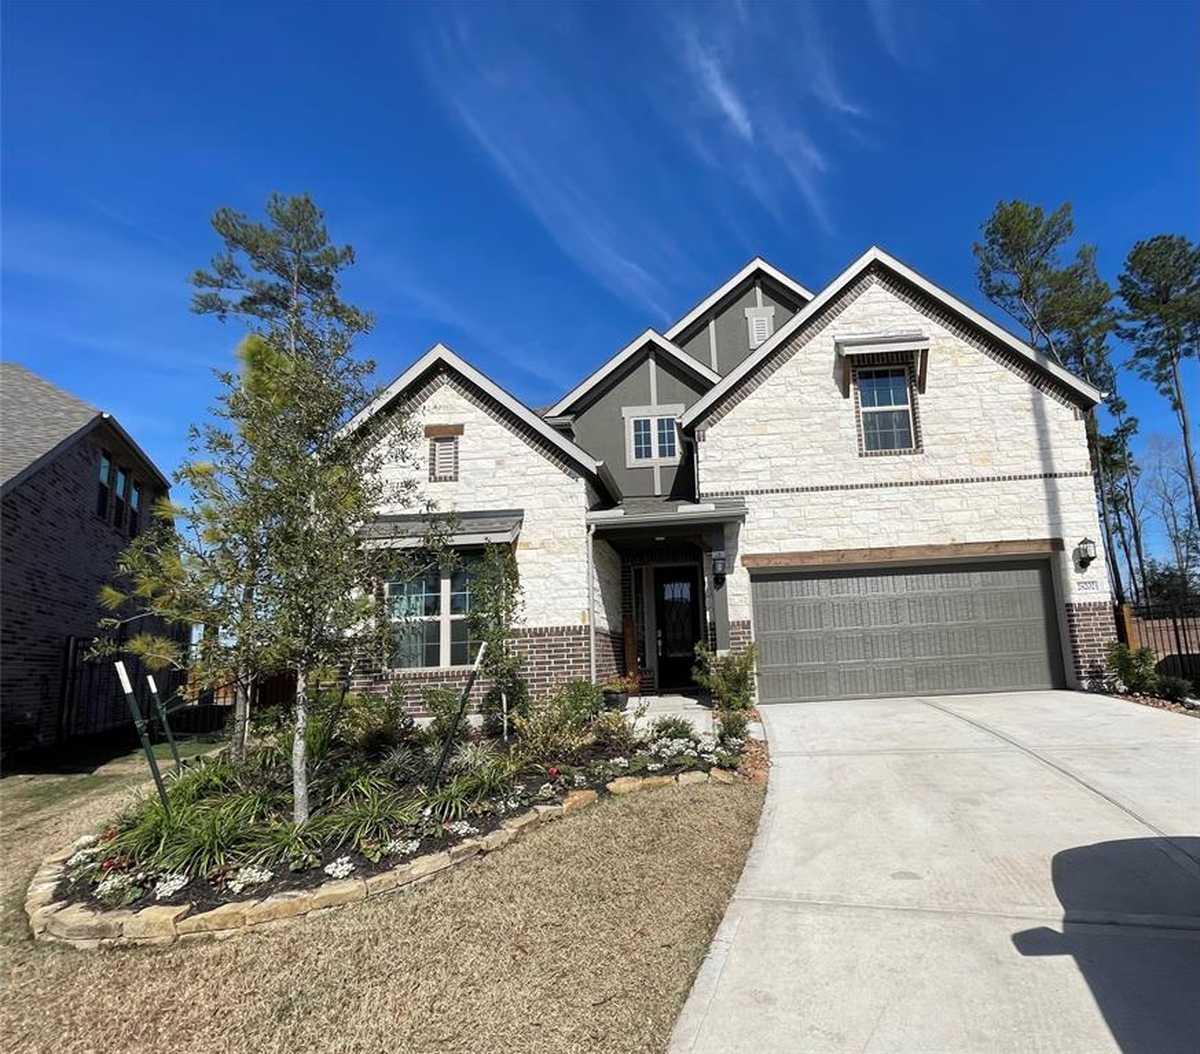 $399,900 - 4Br/4Ba -  for Sale in Woodsons Reserve 11, Spring